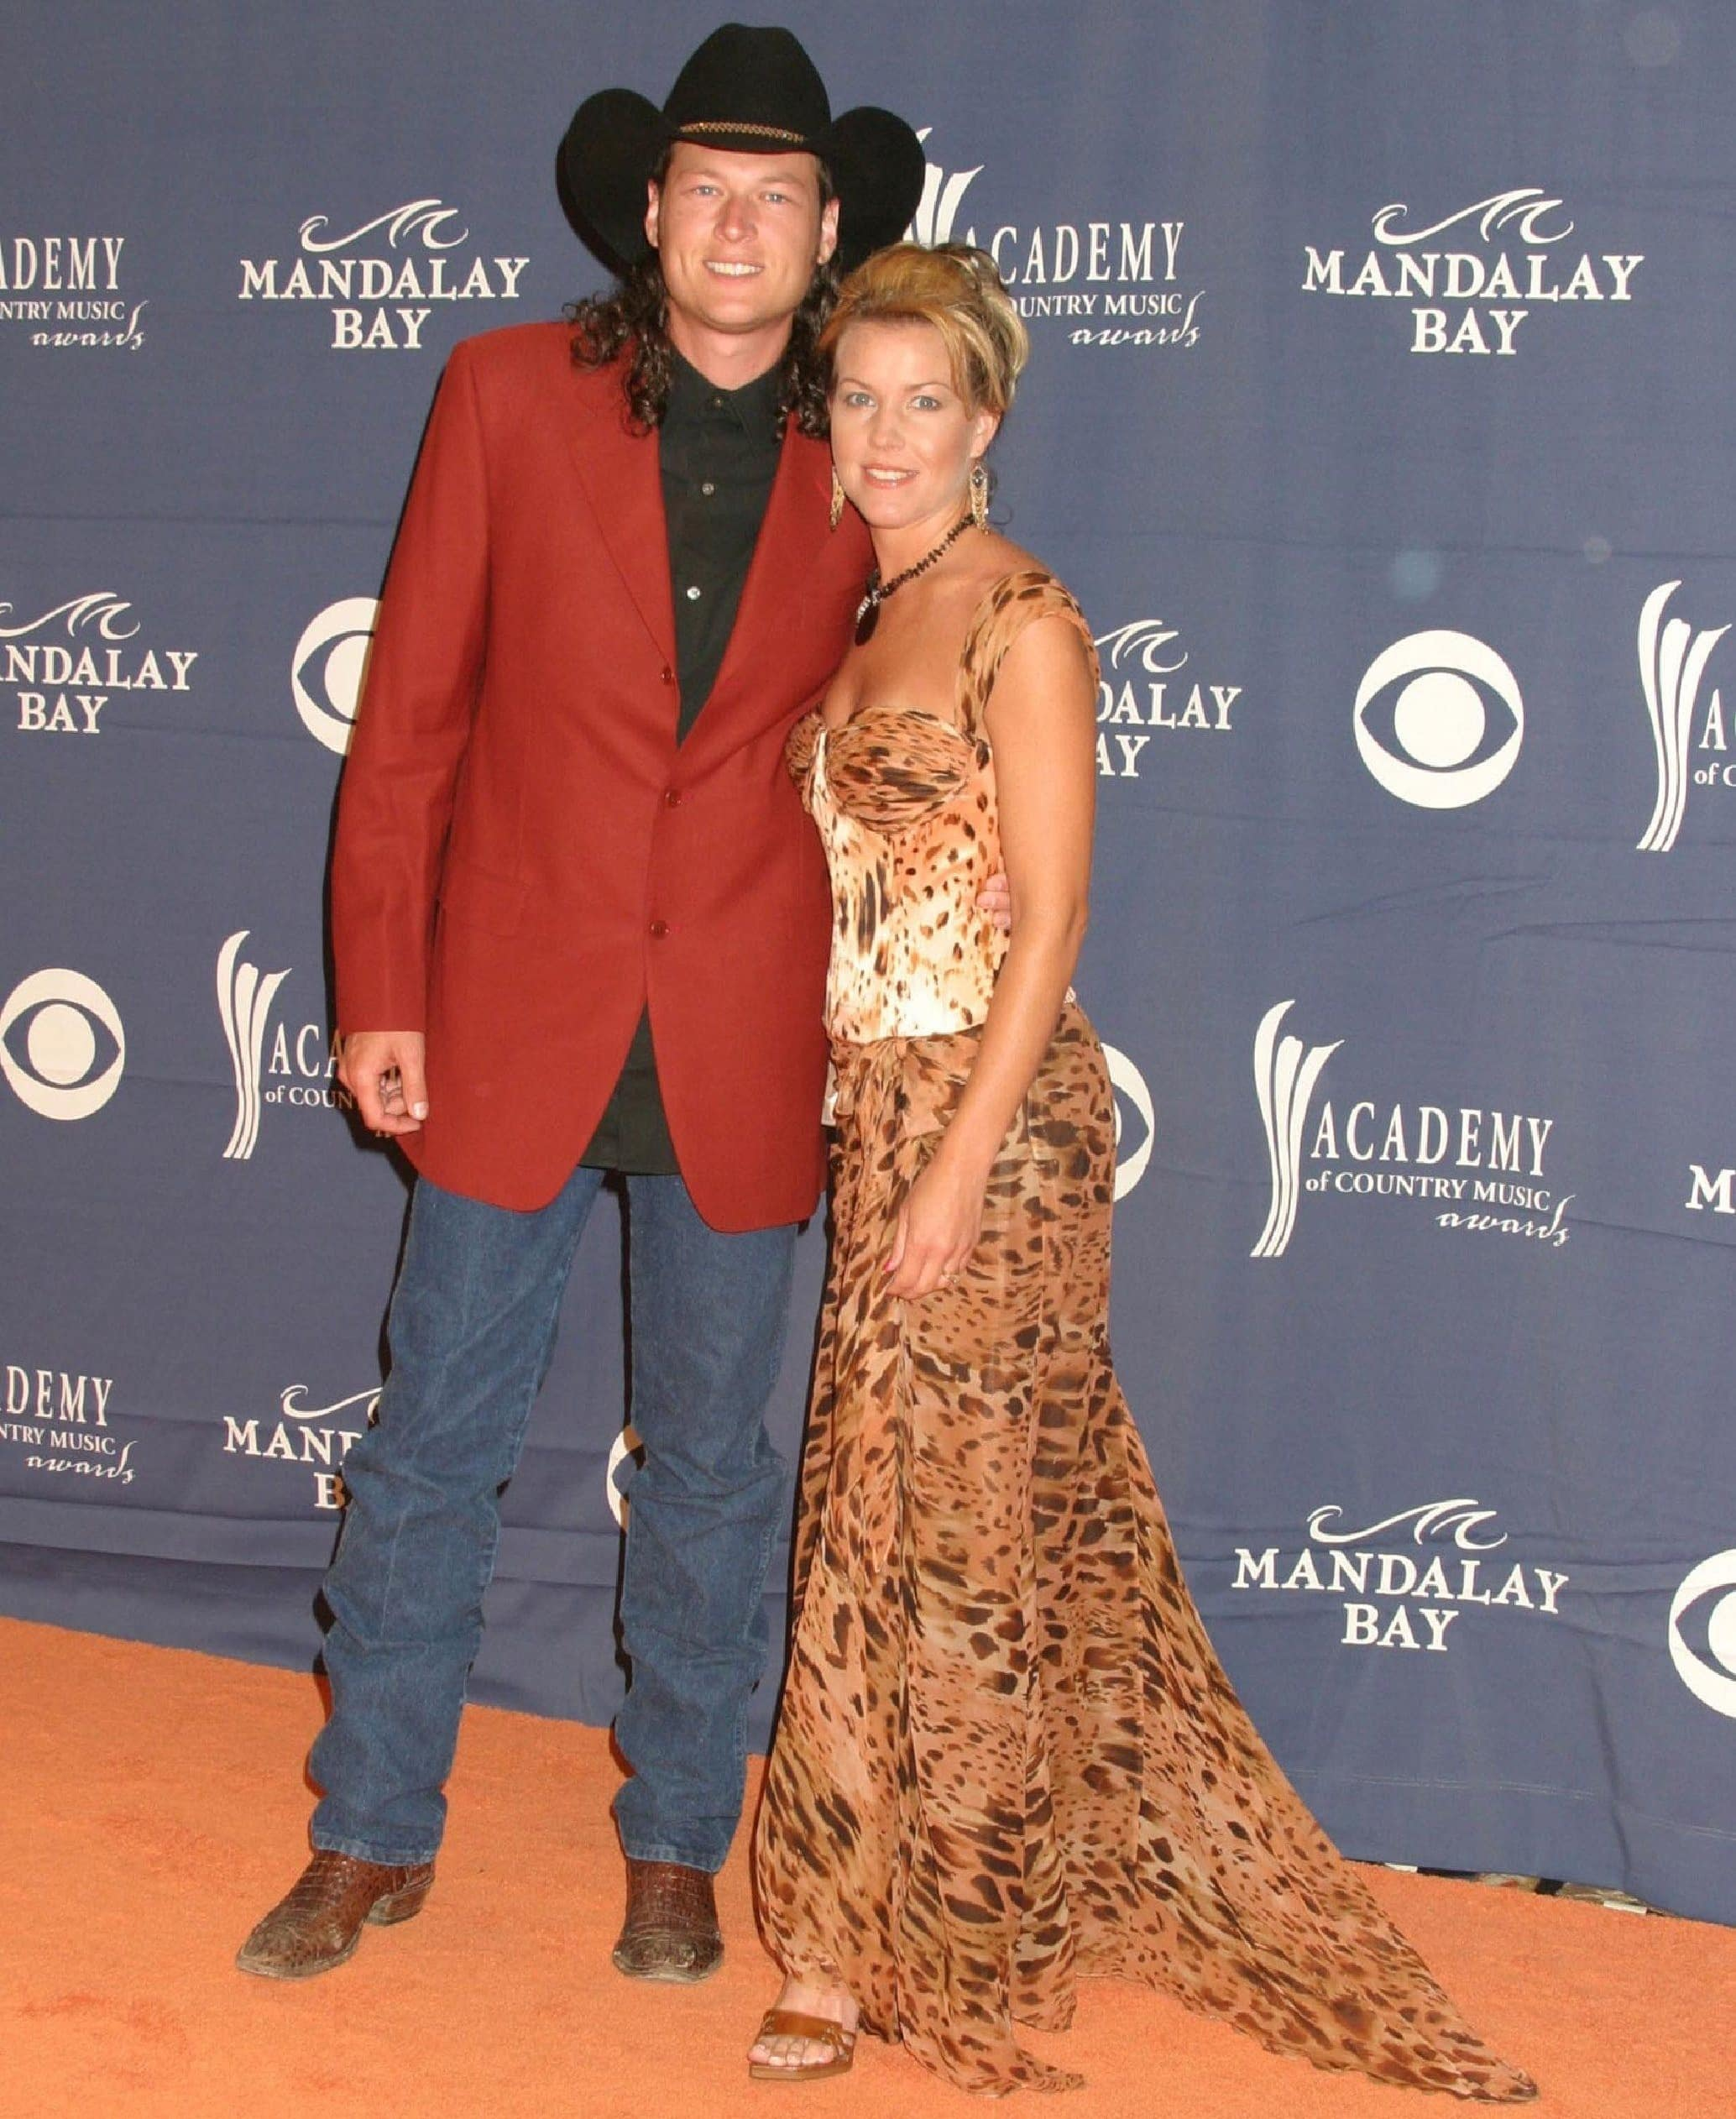 Blake Shelton was married to his high school sweetheart Kaynette Williams (also known as Kaynette Gern) from 2003 to 2006